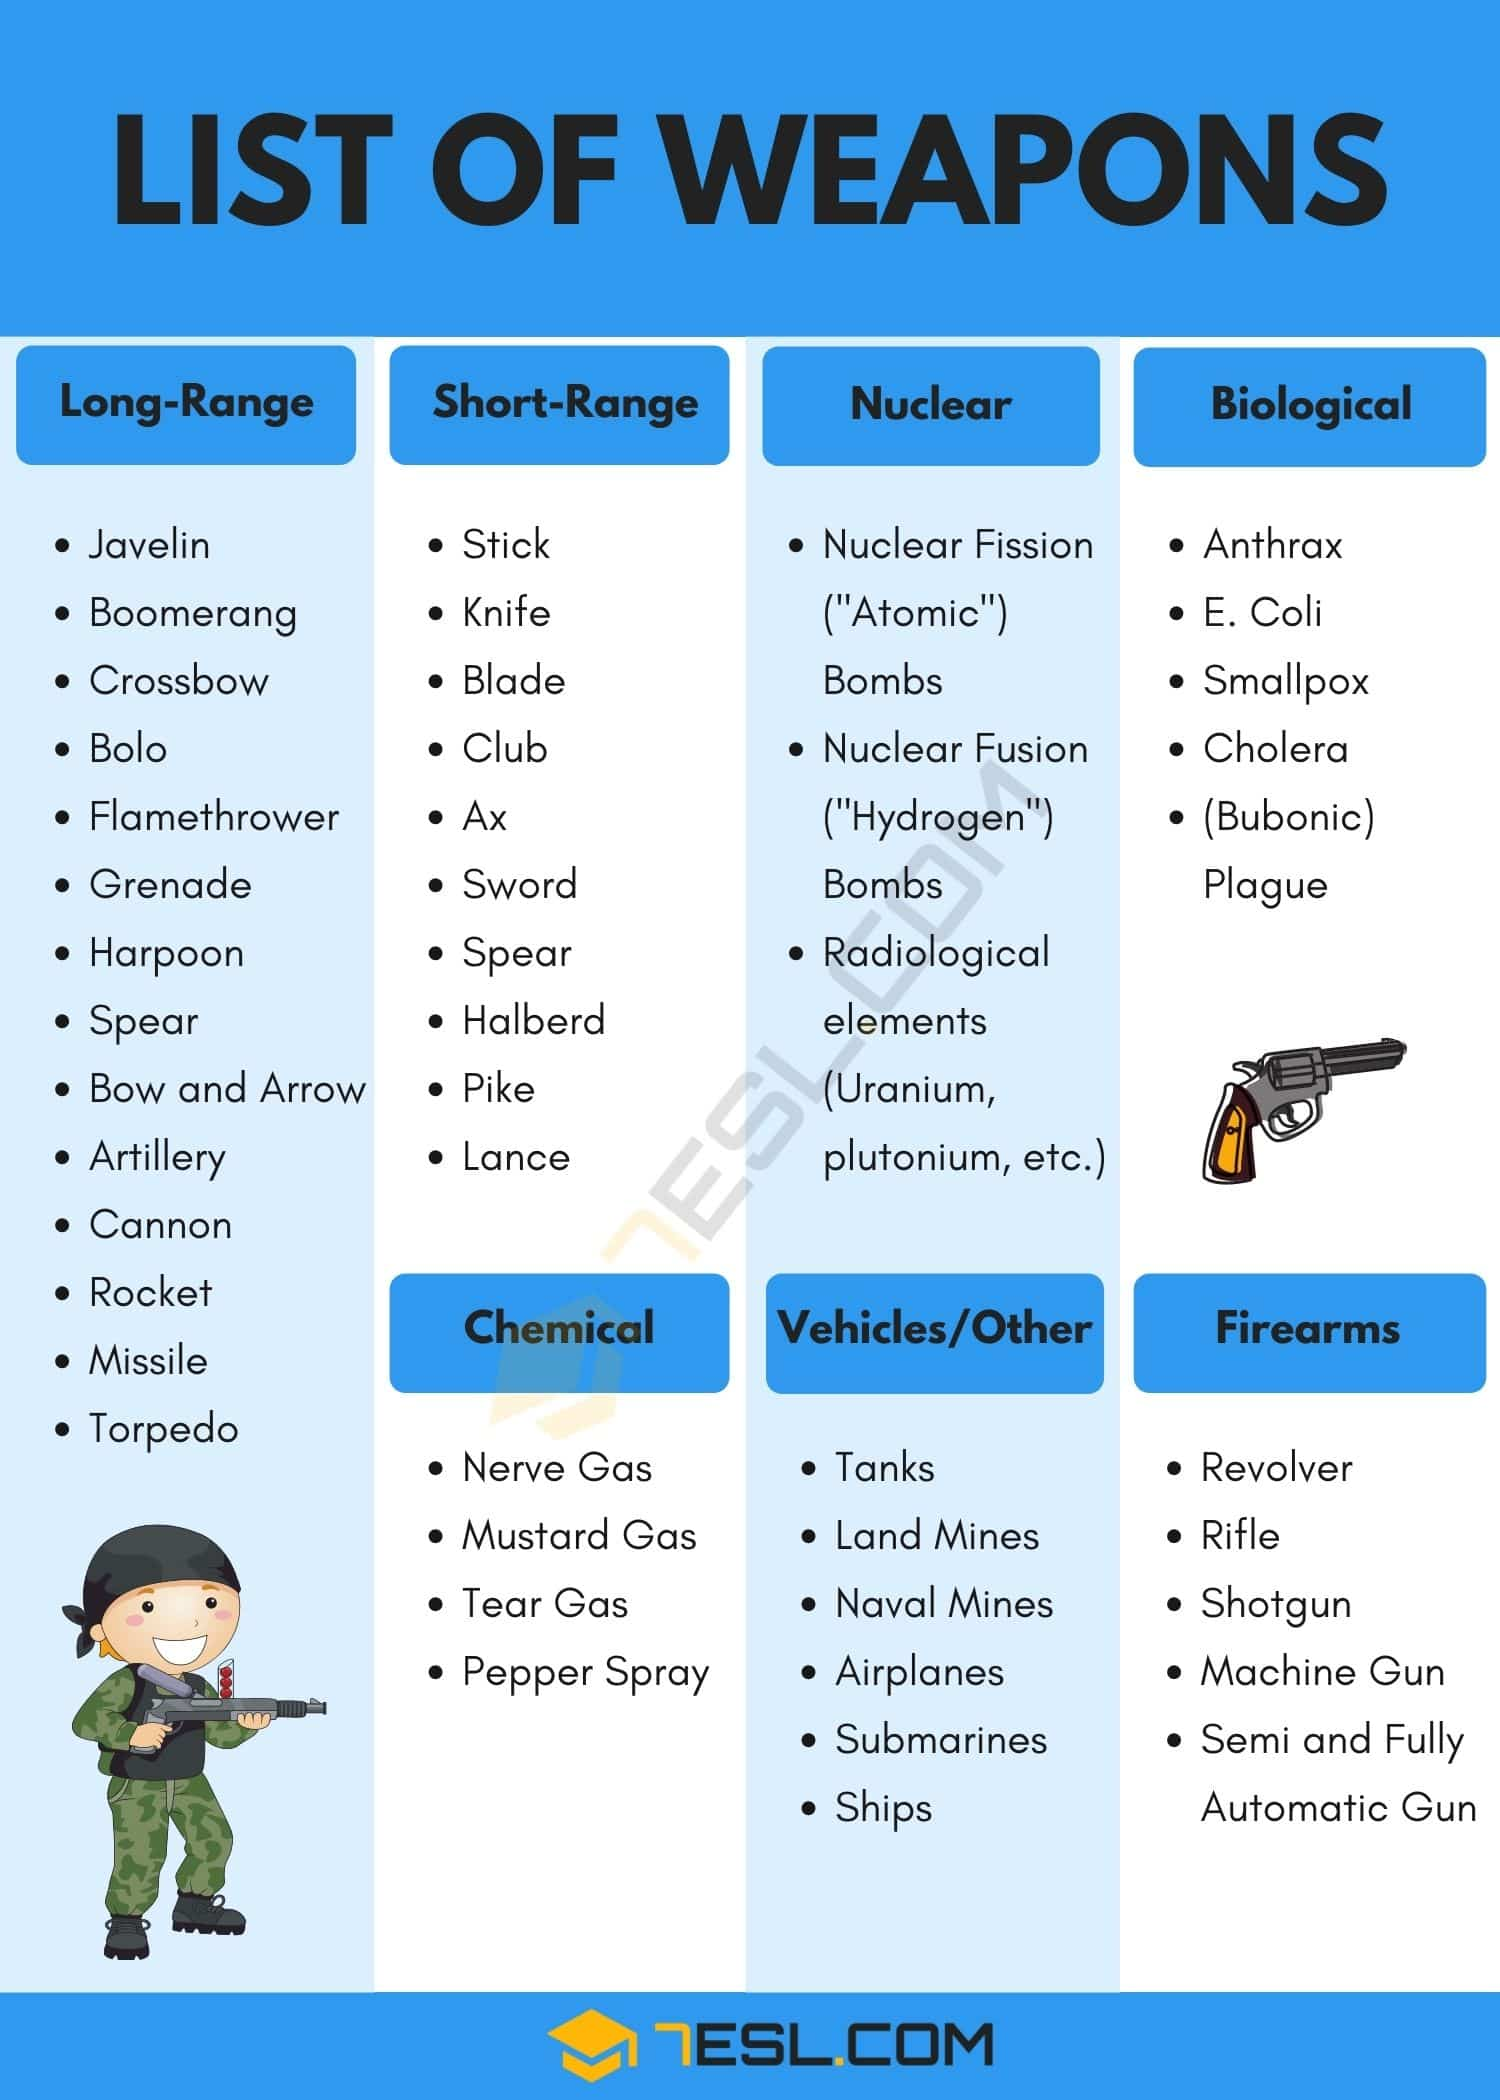 List of Weapons